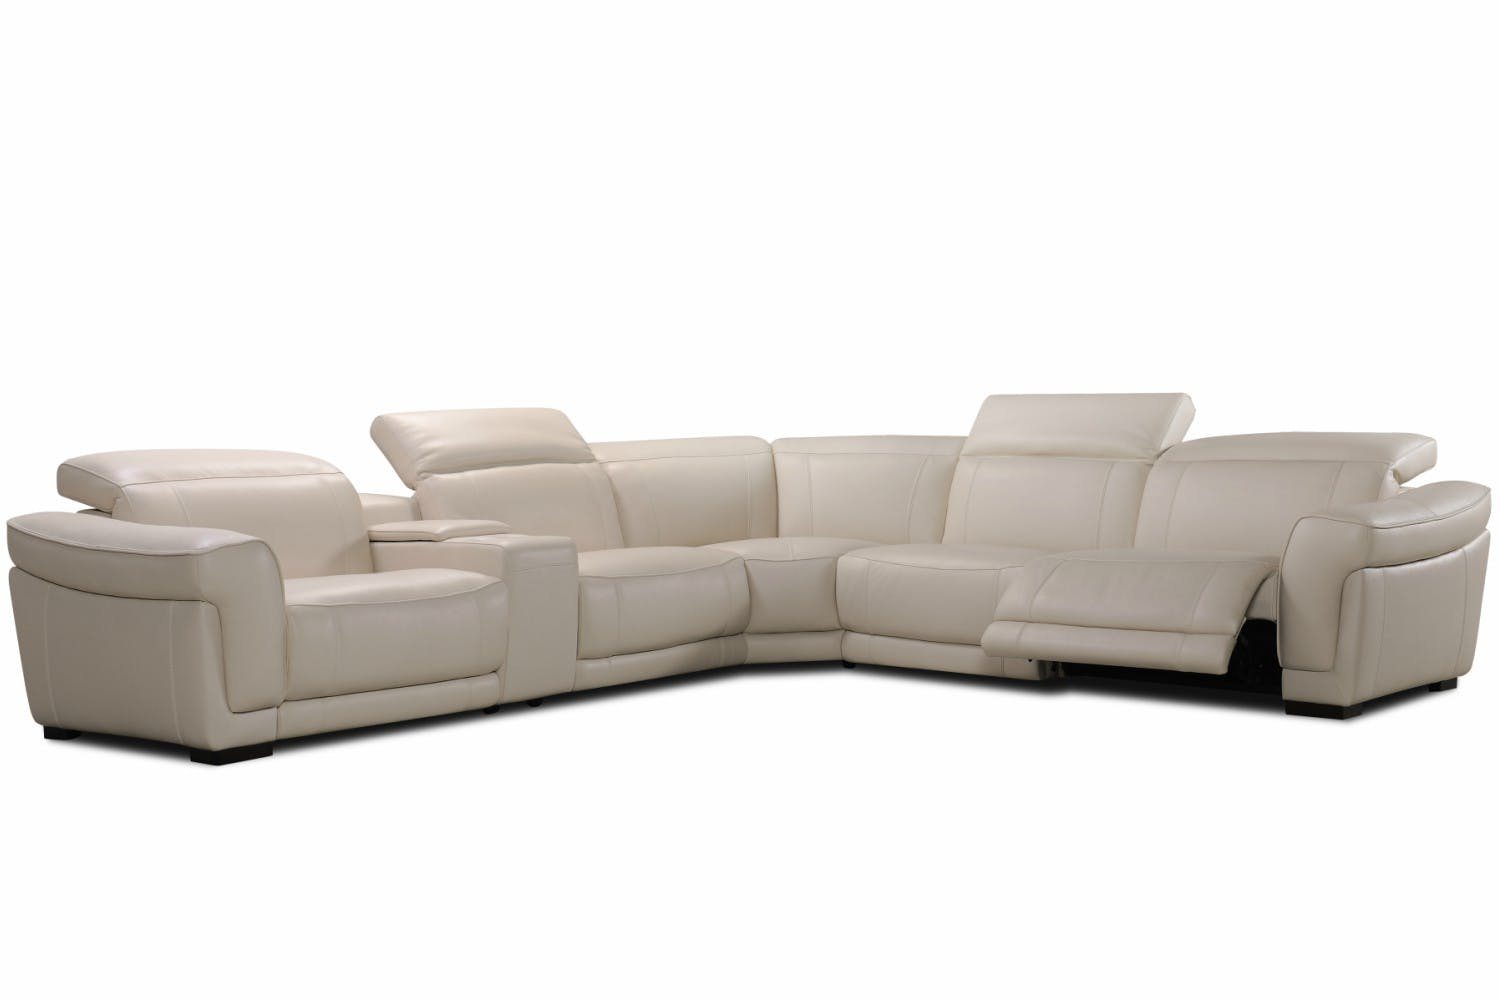 Awe Inspiring Sonny Corner Sofa Manual Recliner Download Free Architecture Designs Sospemadebymaigaardcom